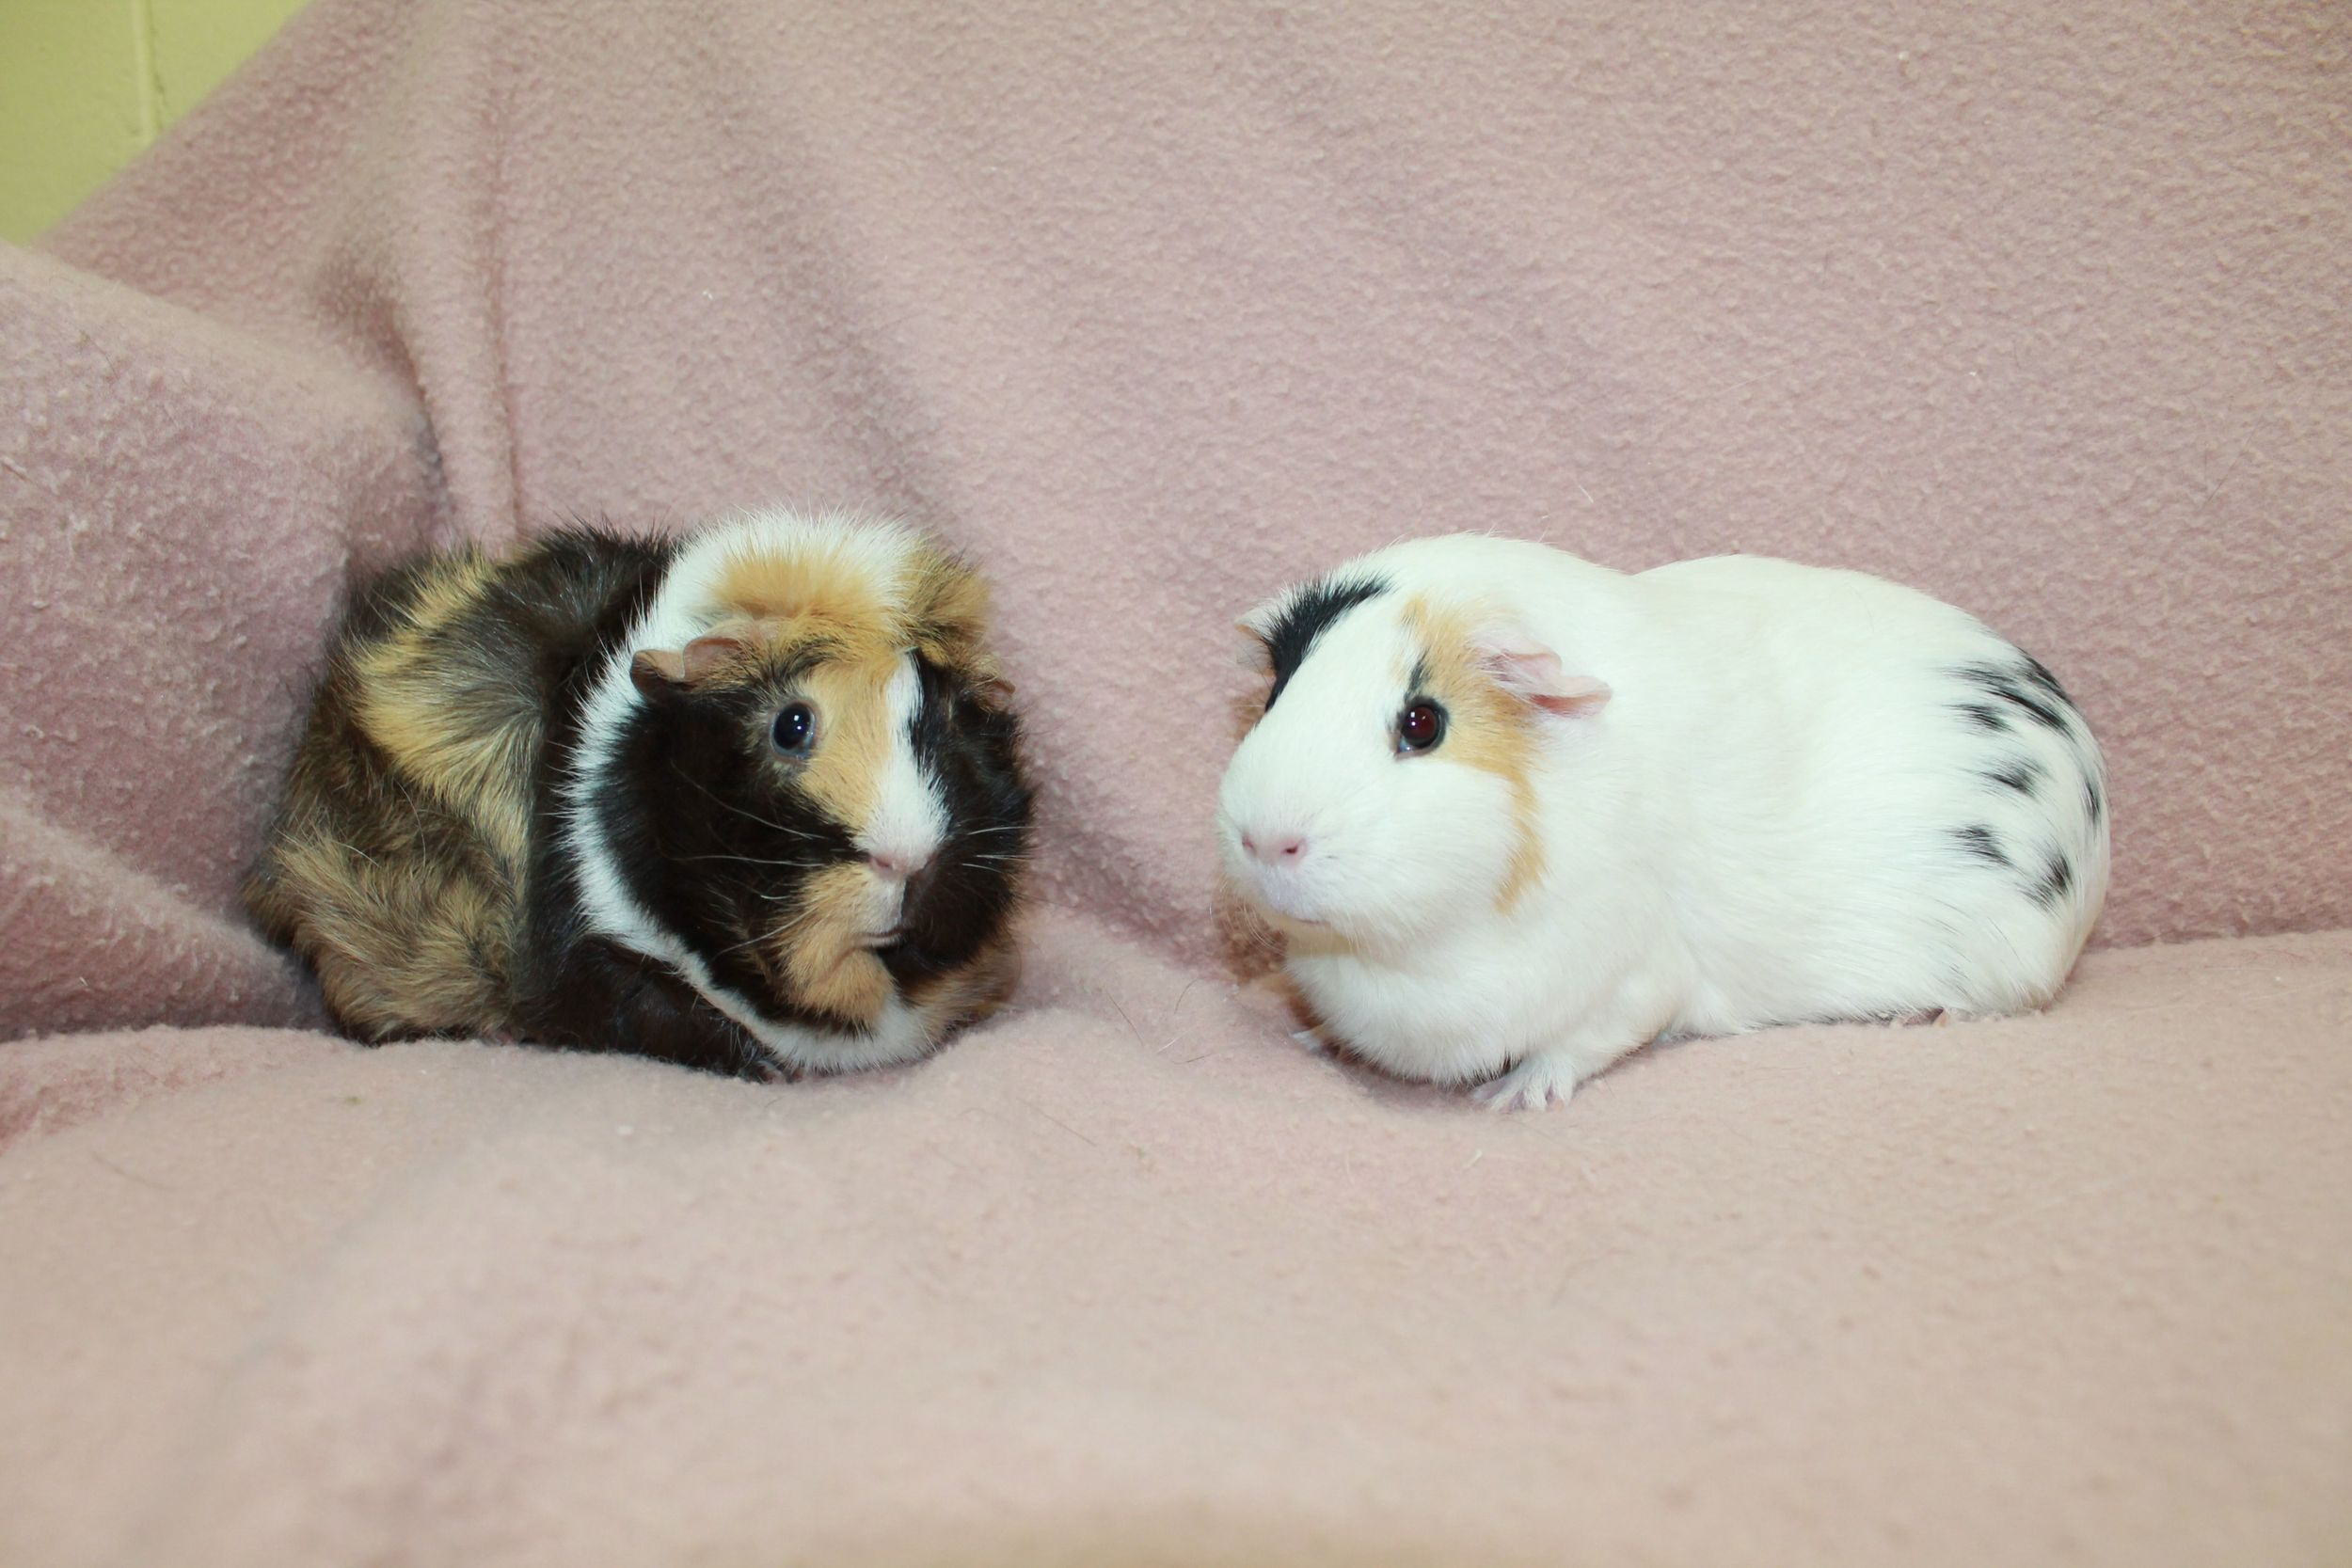 Suzie and Rosie are a bonded pair of Guinea Pigs. They are almost 2 years old. They enjoy green leafy salads and snuggling in nice cozy laps enjoying gentle pets.